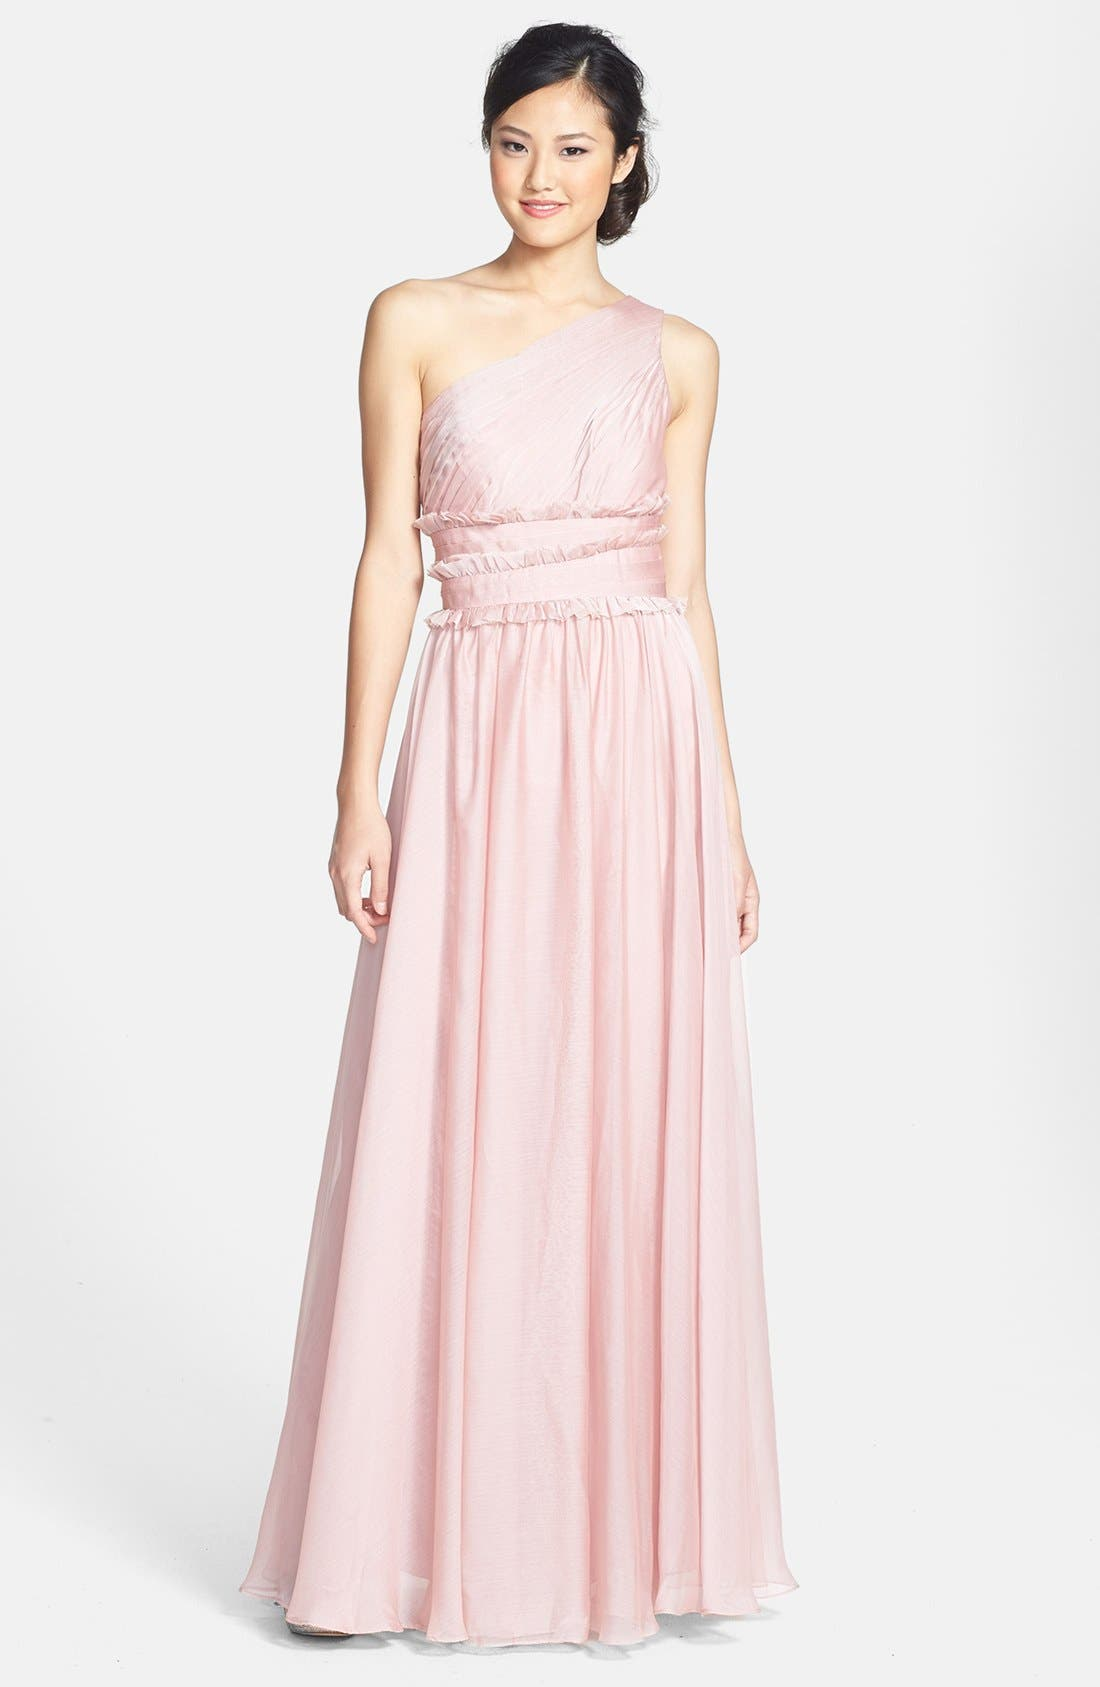 Alternate Image 1 Selected - ML Monique Lhuillier Bridesmaids One-Shoulder Chiffon Gown (Nordstrom Exclusive)